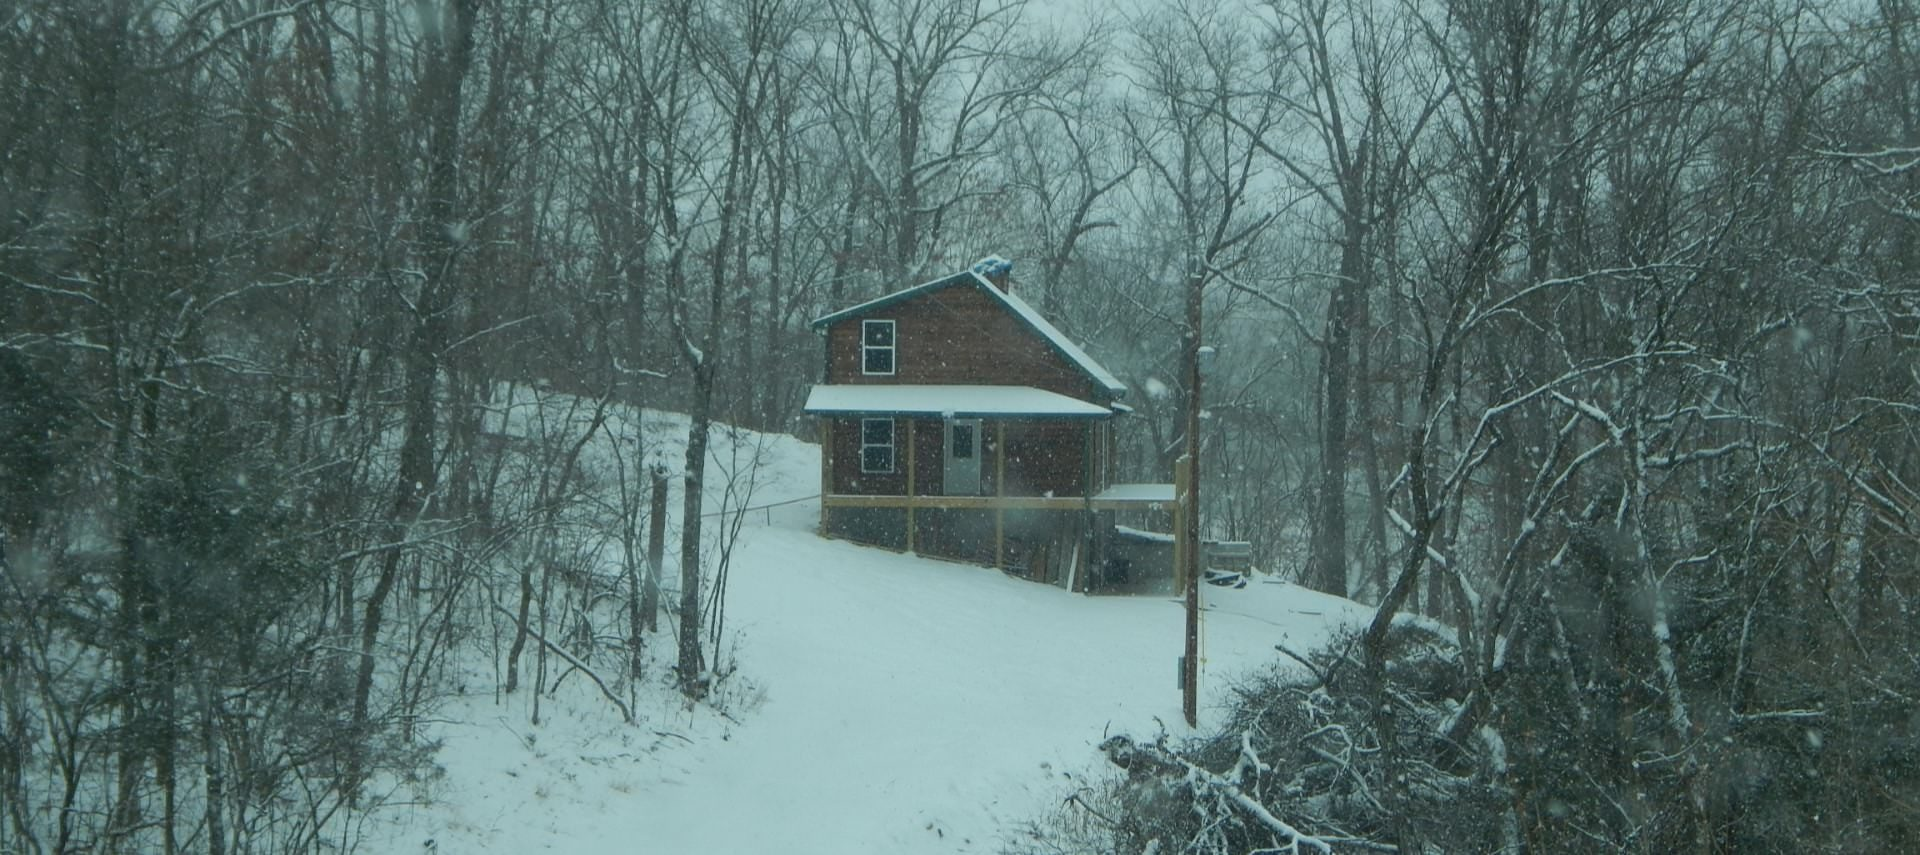 Brown cabin in the woods surrounded by trees and snow